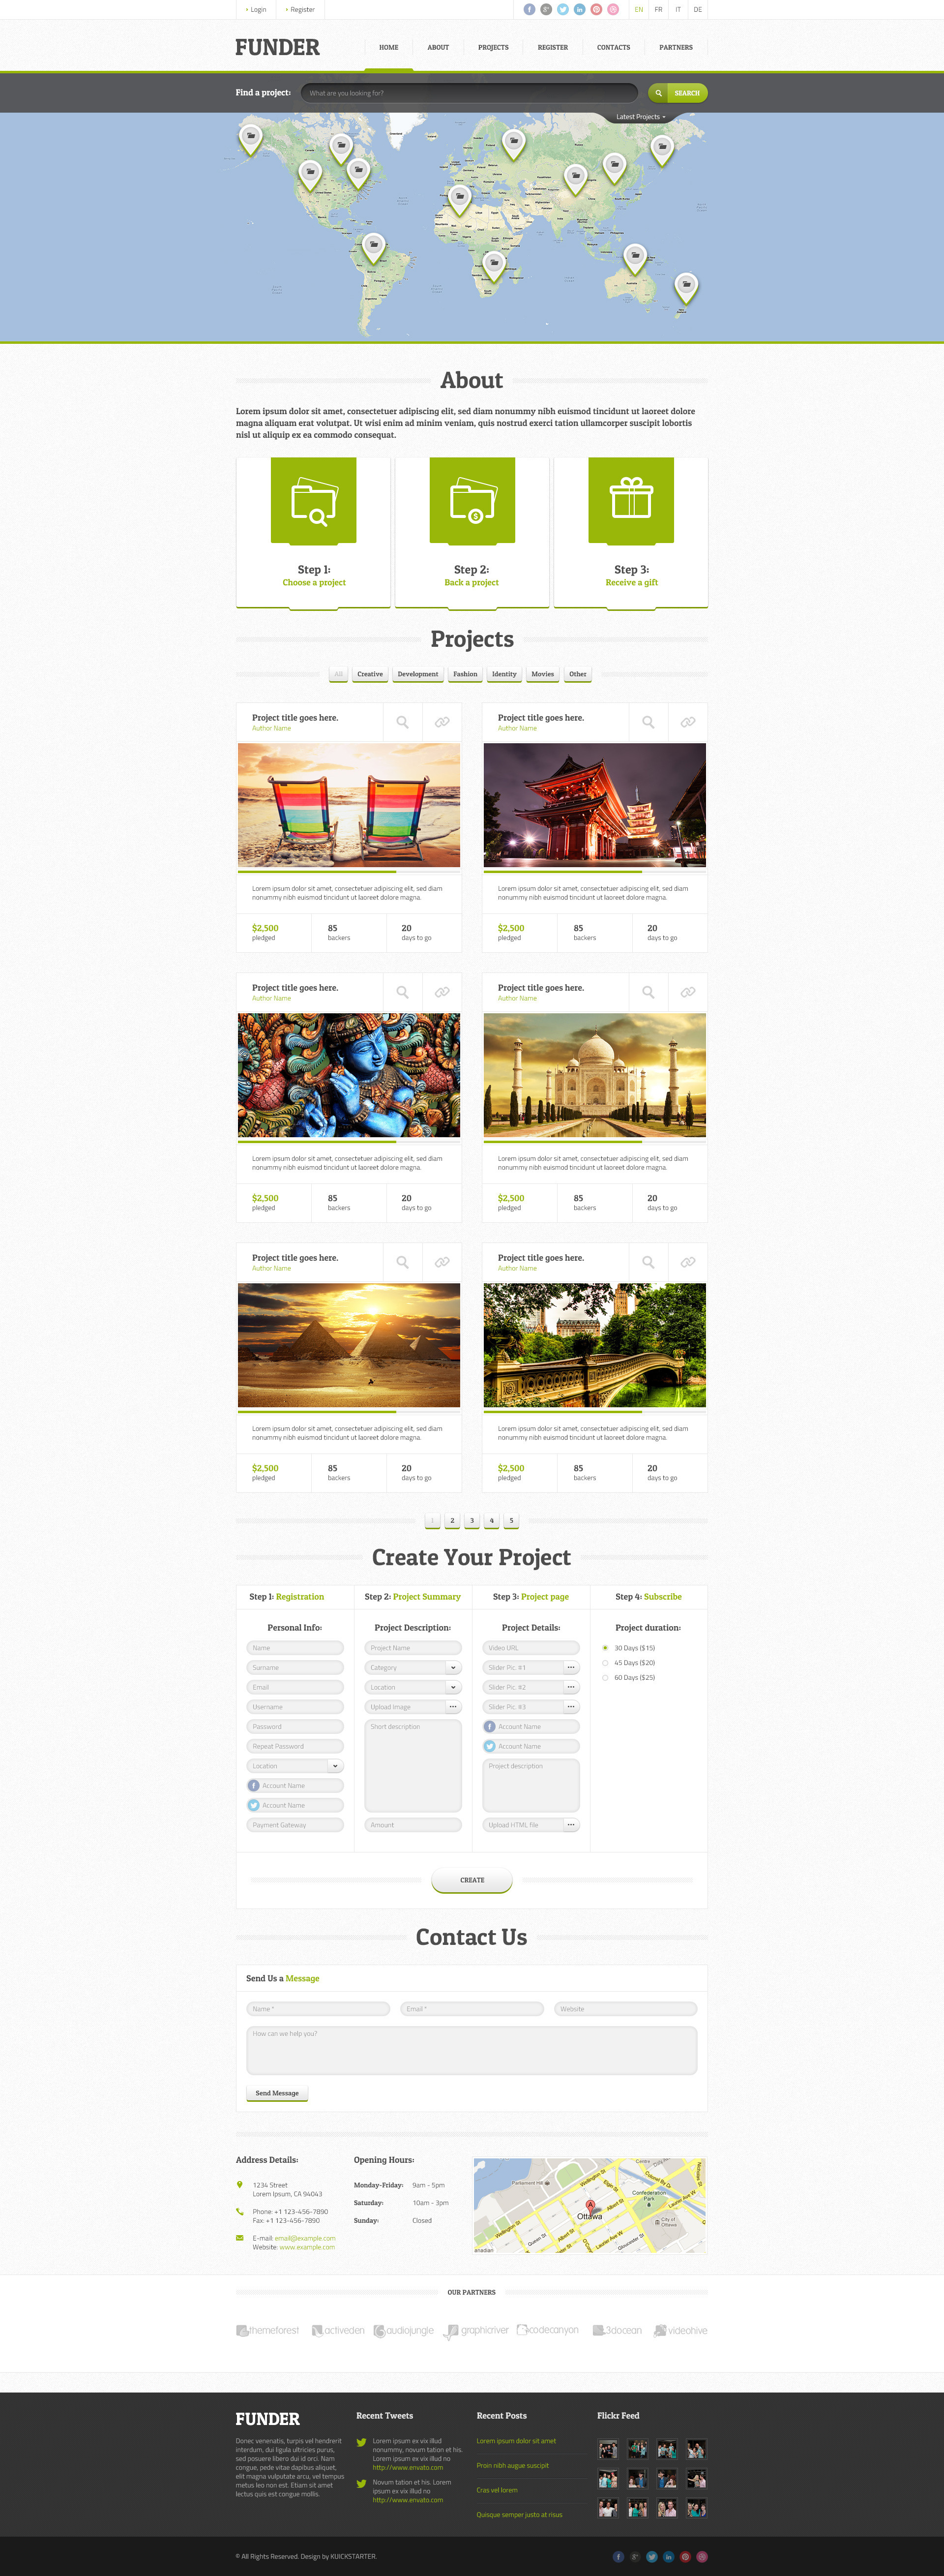 FUNDER - Crowdfunding Wordpress Theme